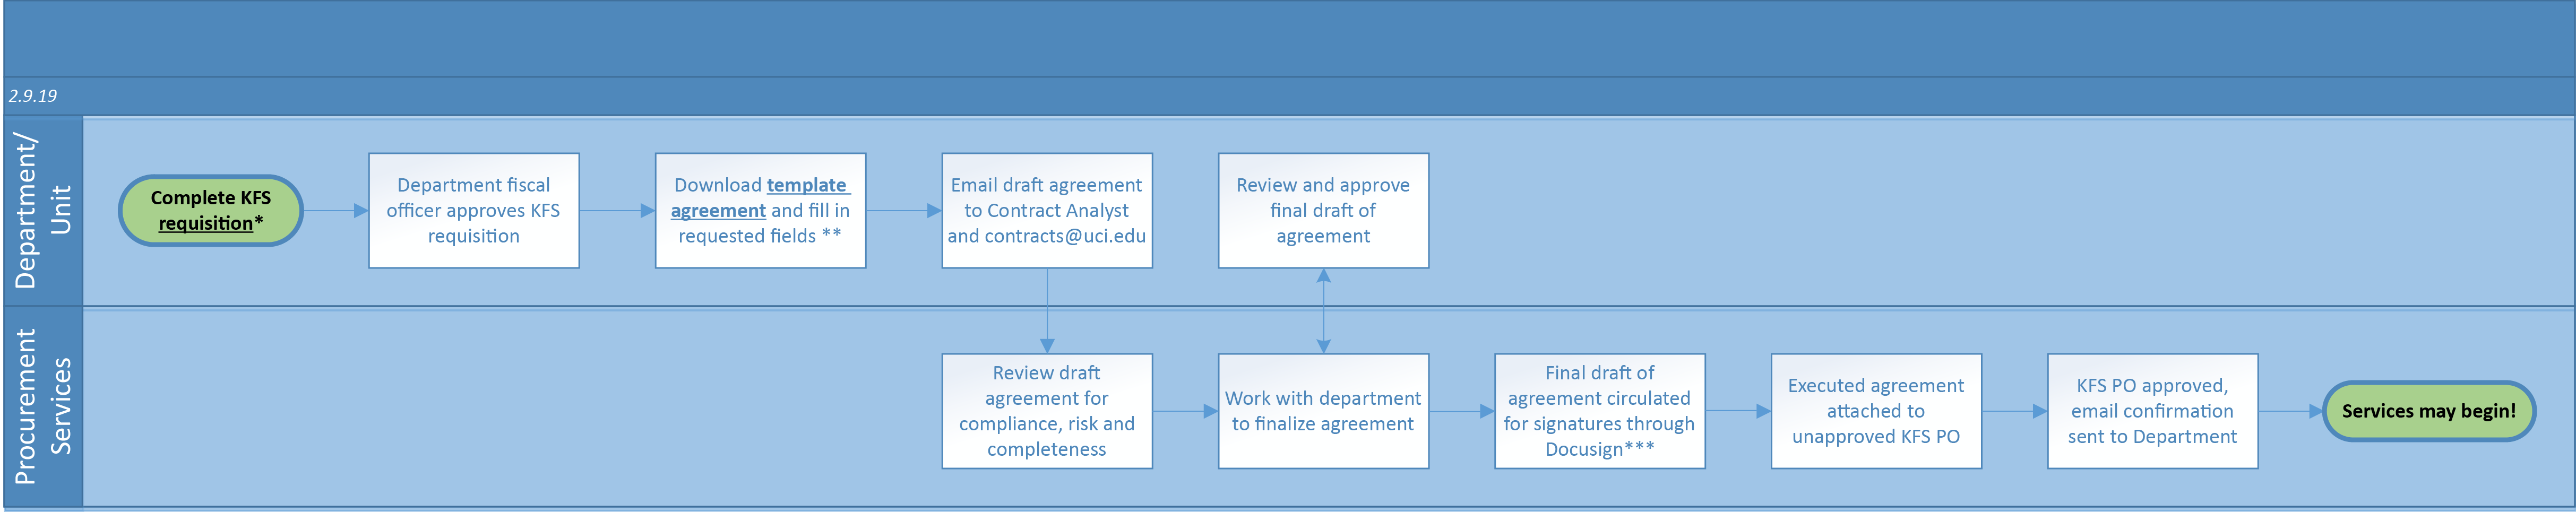 procurement-services-contracts-workflow.png